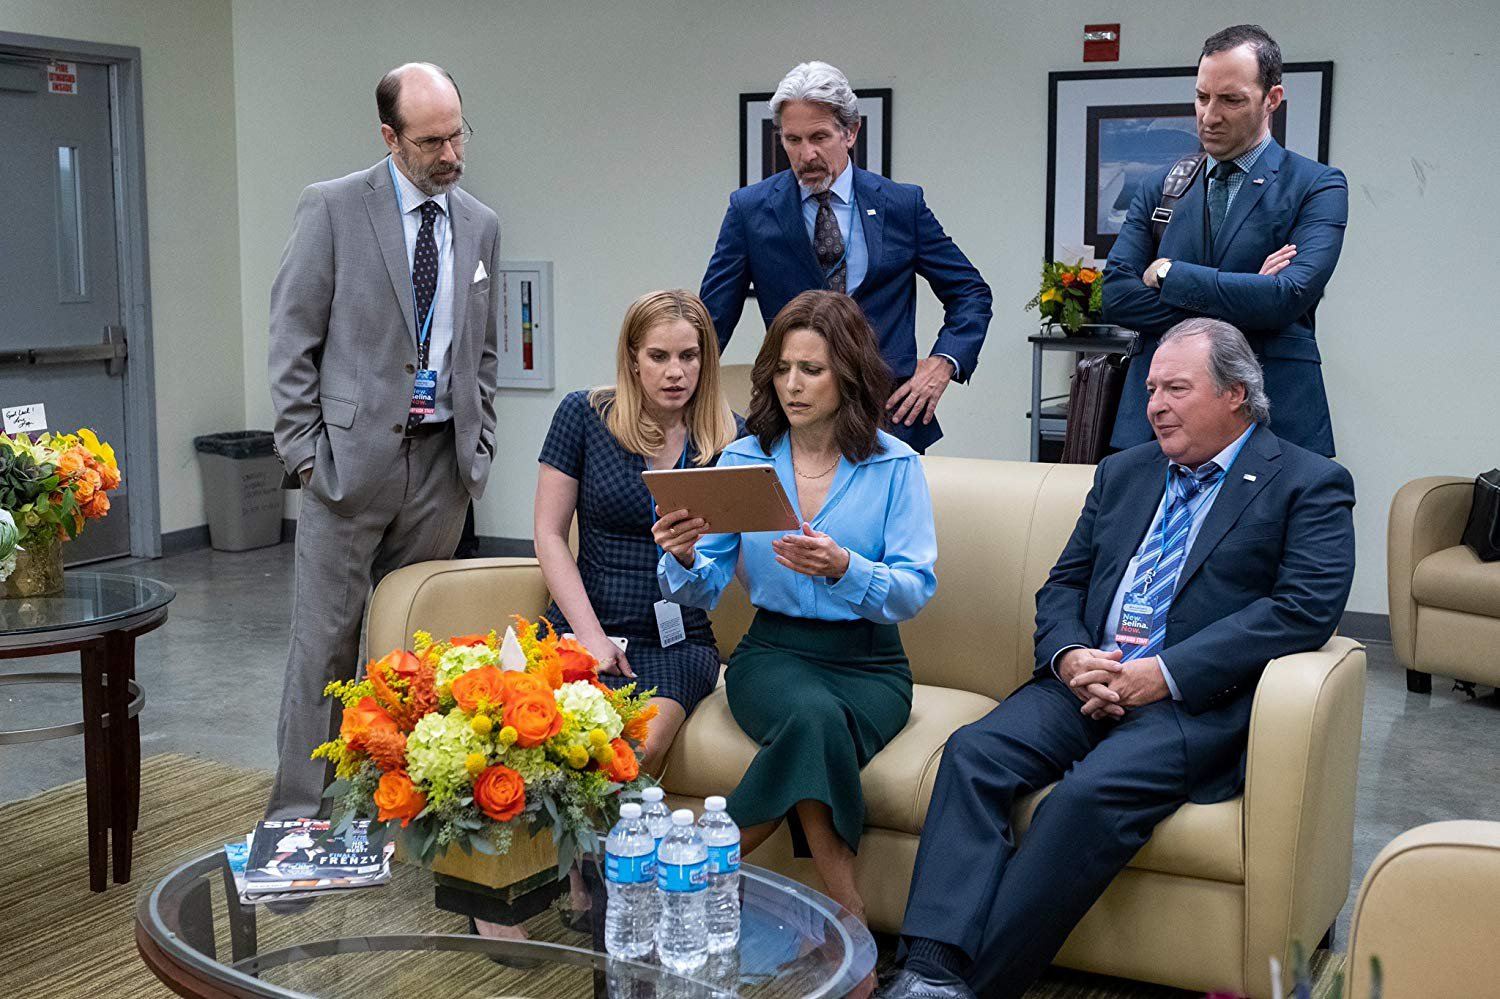 Julia Louis-Dreyfus among Veep cast bidding farewell to show after season 7 finale